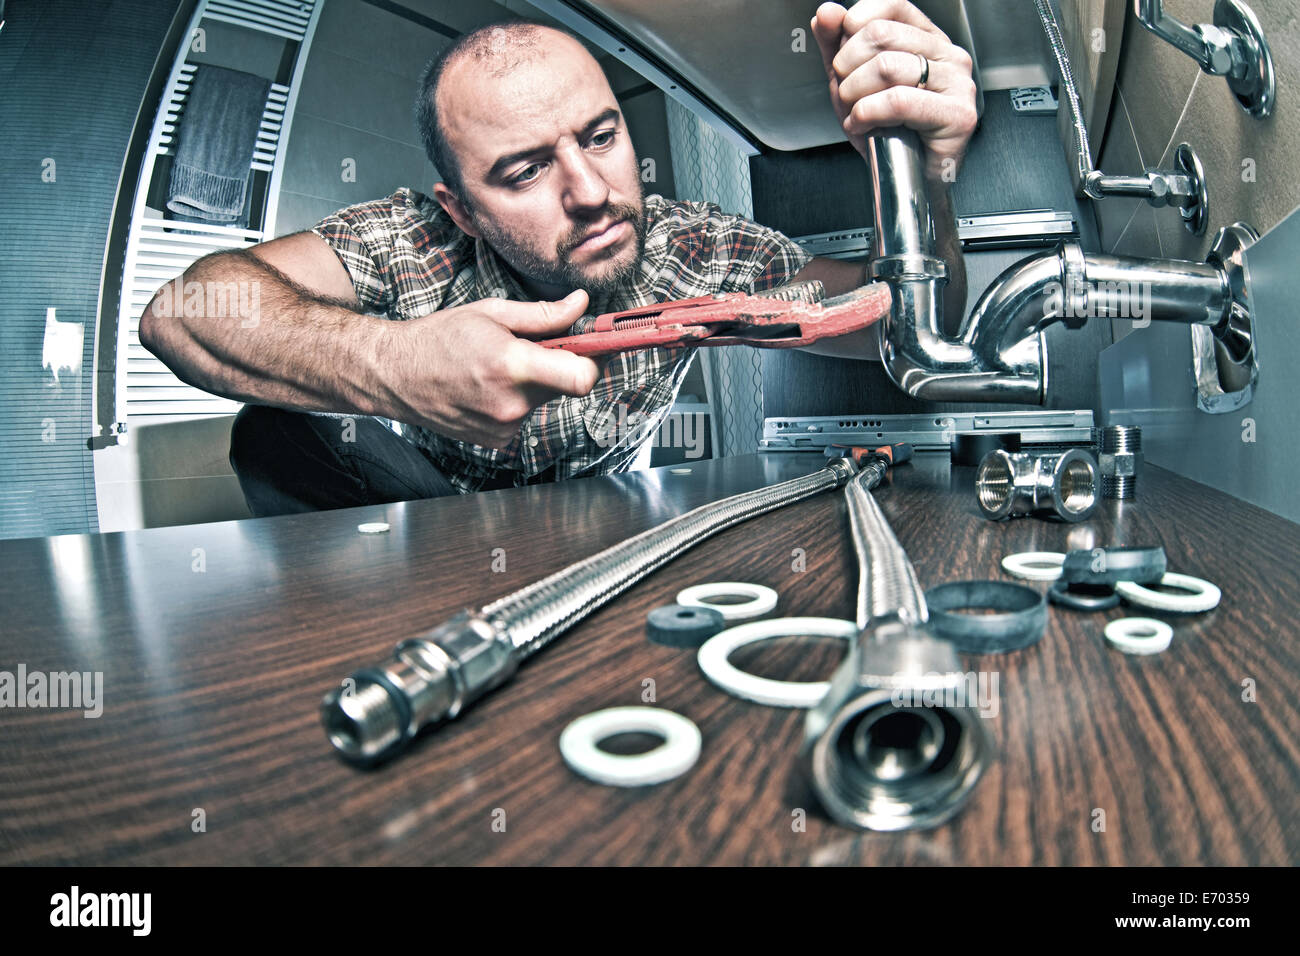 portrait of plumber at work - Stock Image